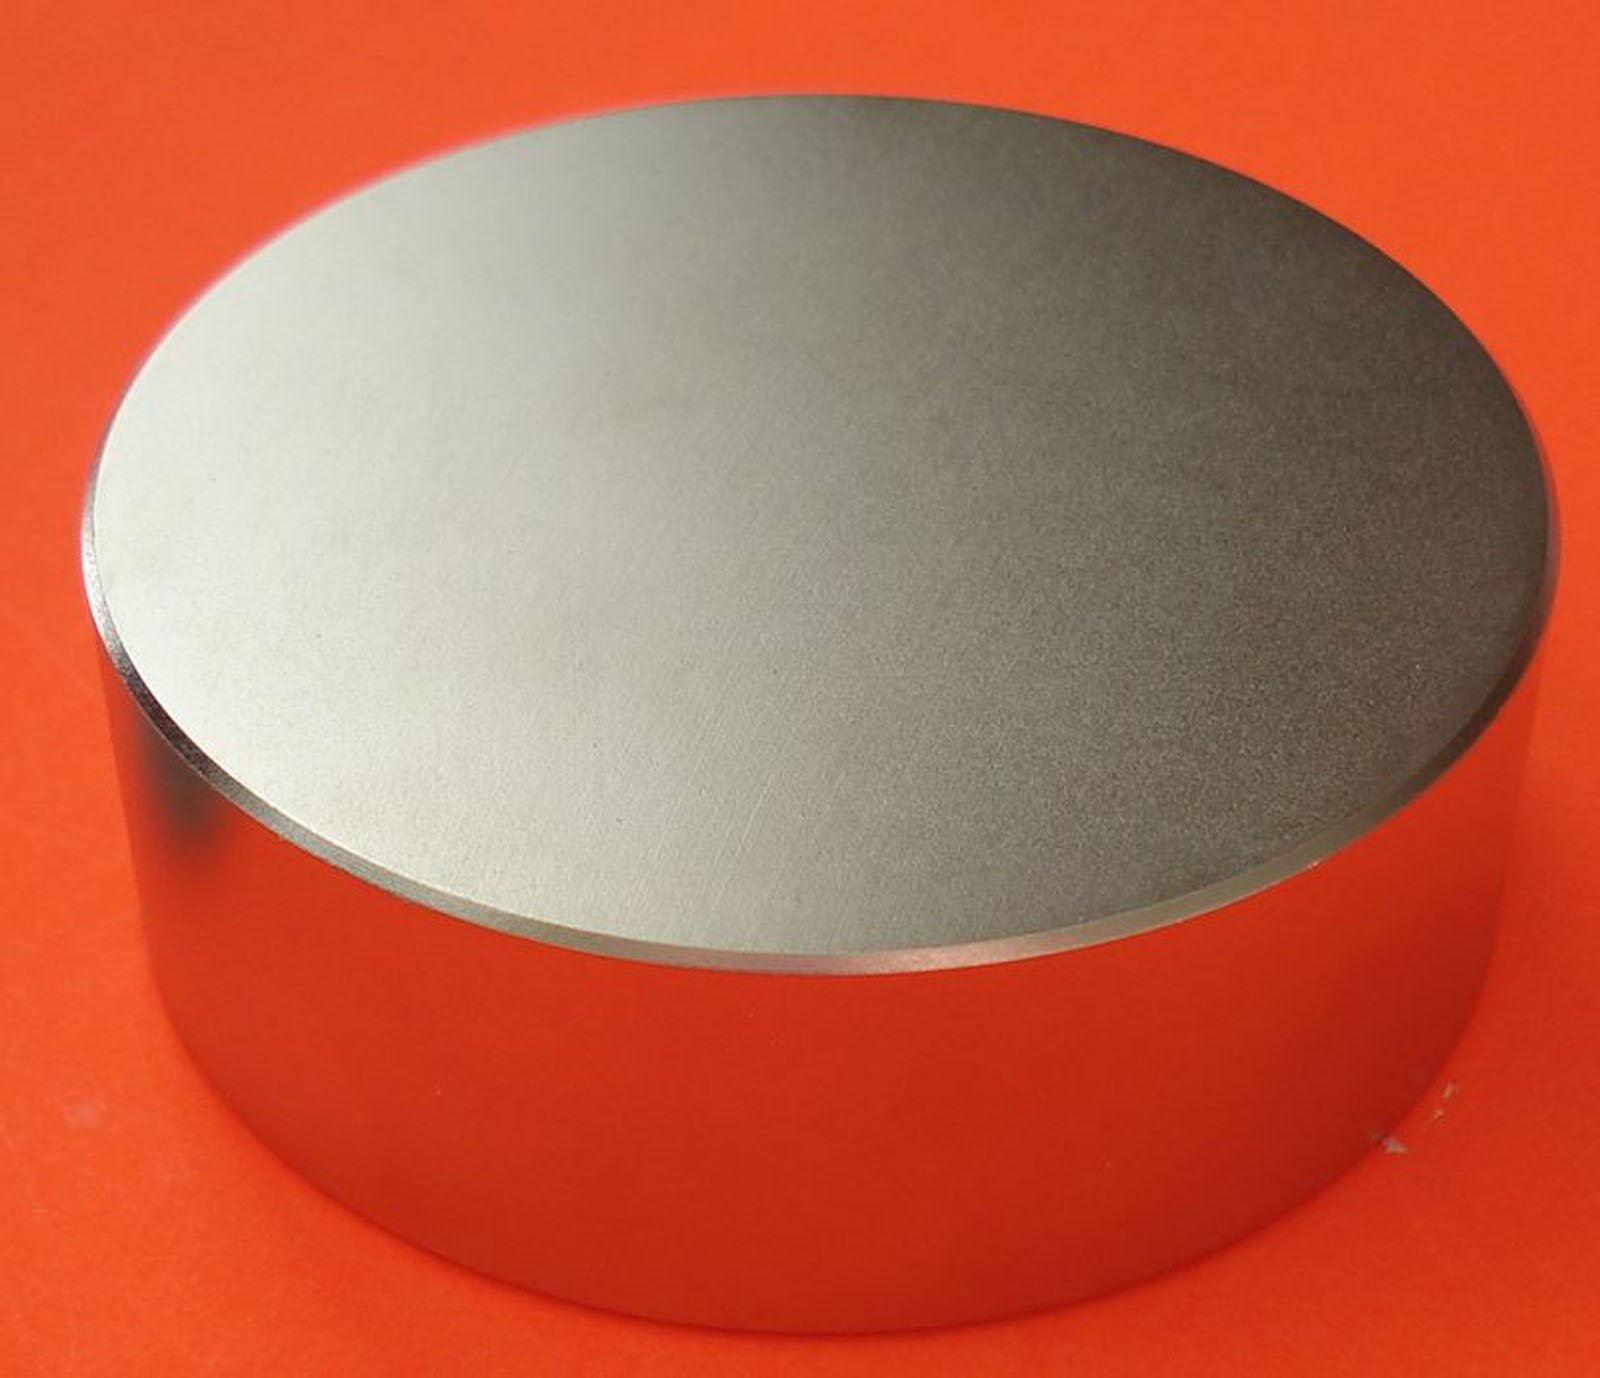 Super Strong Neodymium Magnet N45 6 x 2'' Permanent Magnet Disc, The World's Strongest & Most Powerful Rare Earth Magnets by Applied Magnets